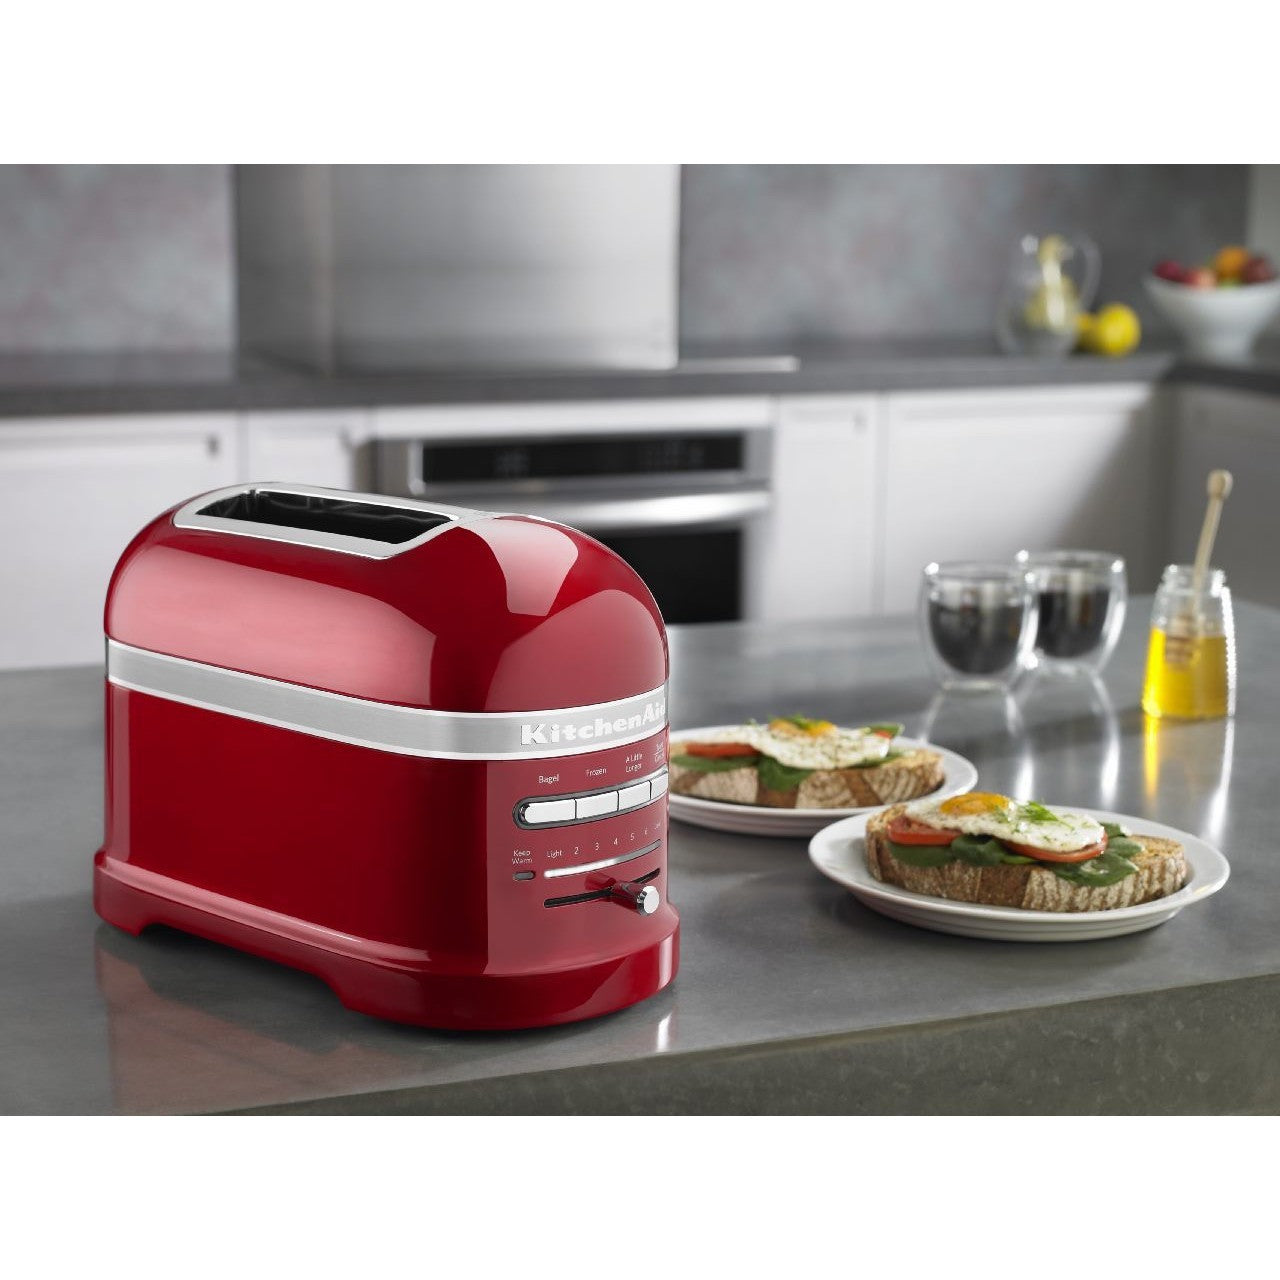 KitchenAid: Proline 2 Slice Toaster - Candy Apple